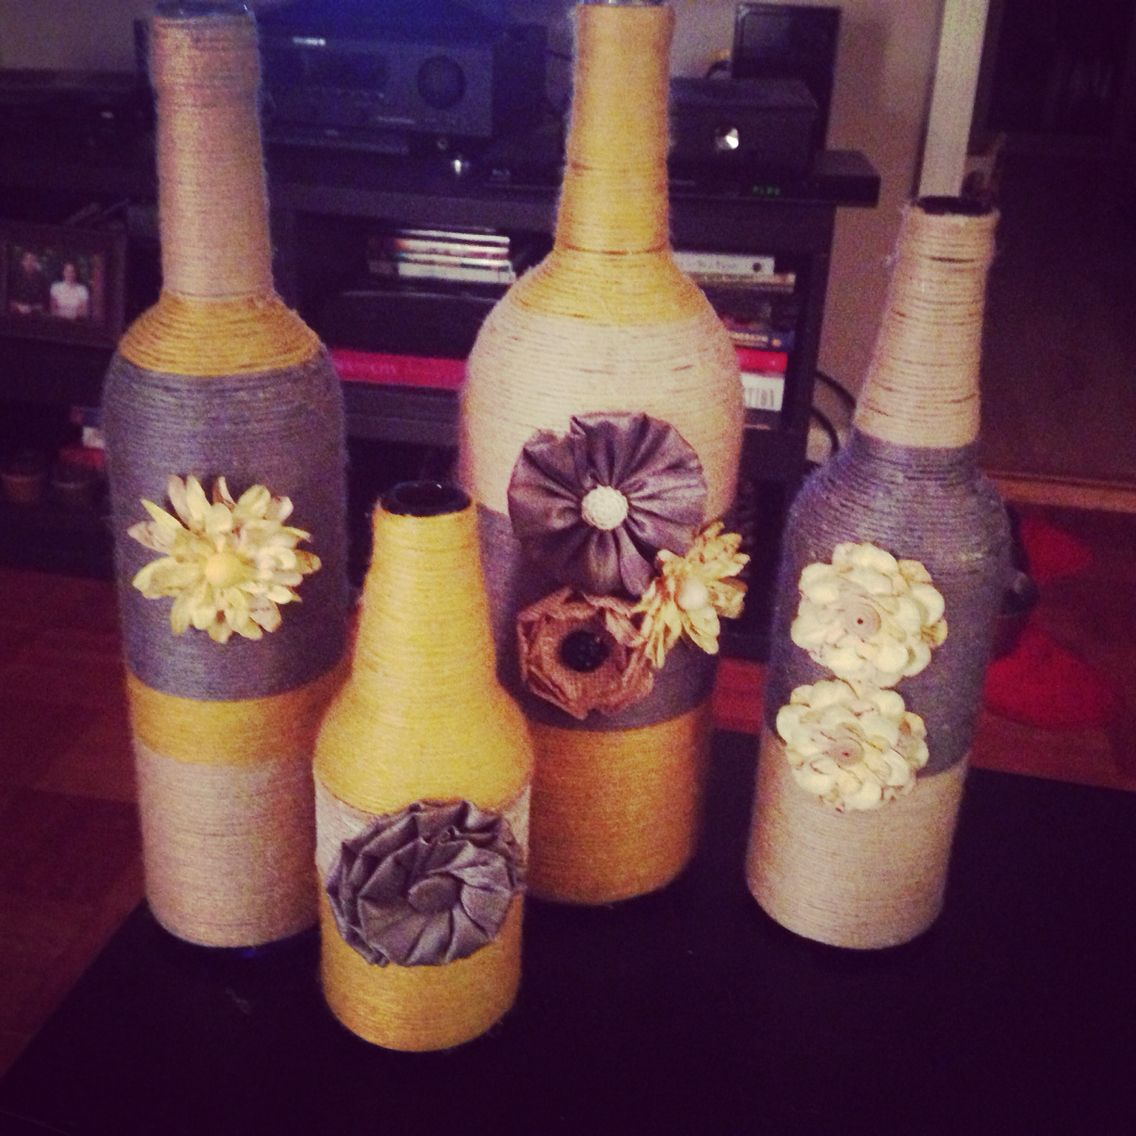 After 4 weeks, I am so happy with how these turned out! Wine bottles, beer bottles, wine, scrapbook aisle flowers and yarn. So fun!